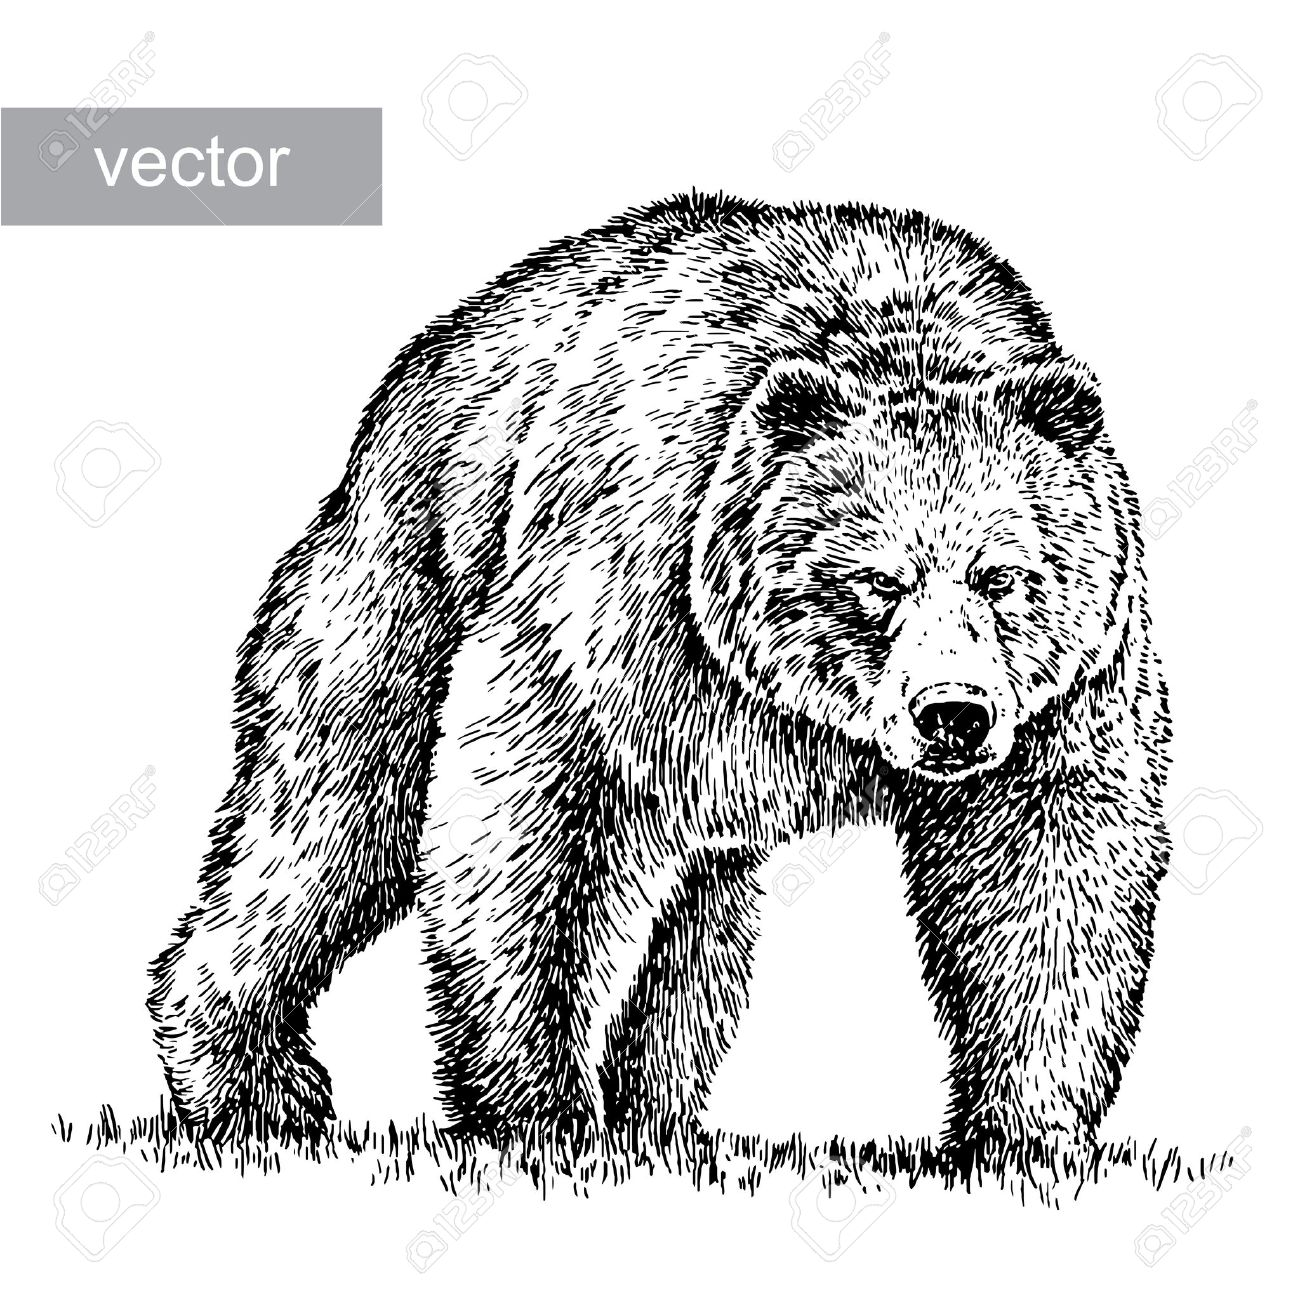 8 365 grizzly bear cliparts stock vector and royalty free grizzly rh 123rf com polar bear clipart black and white polar bear clipart black and white